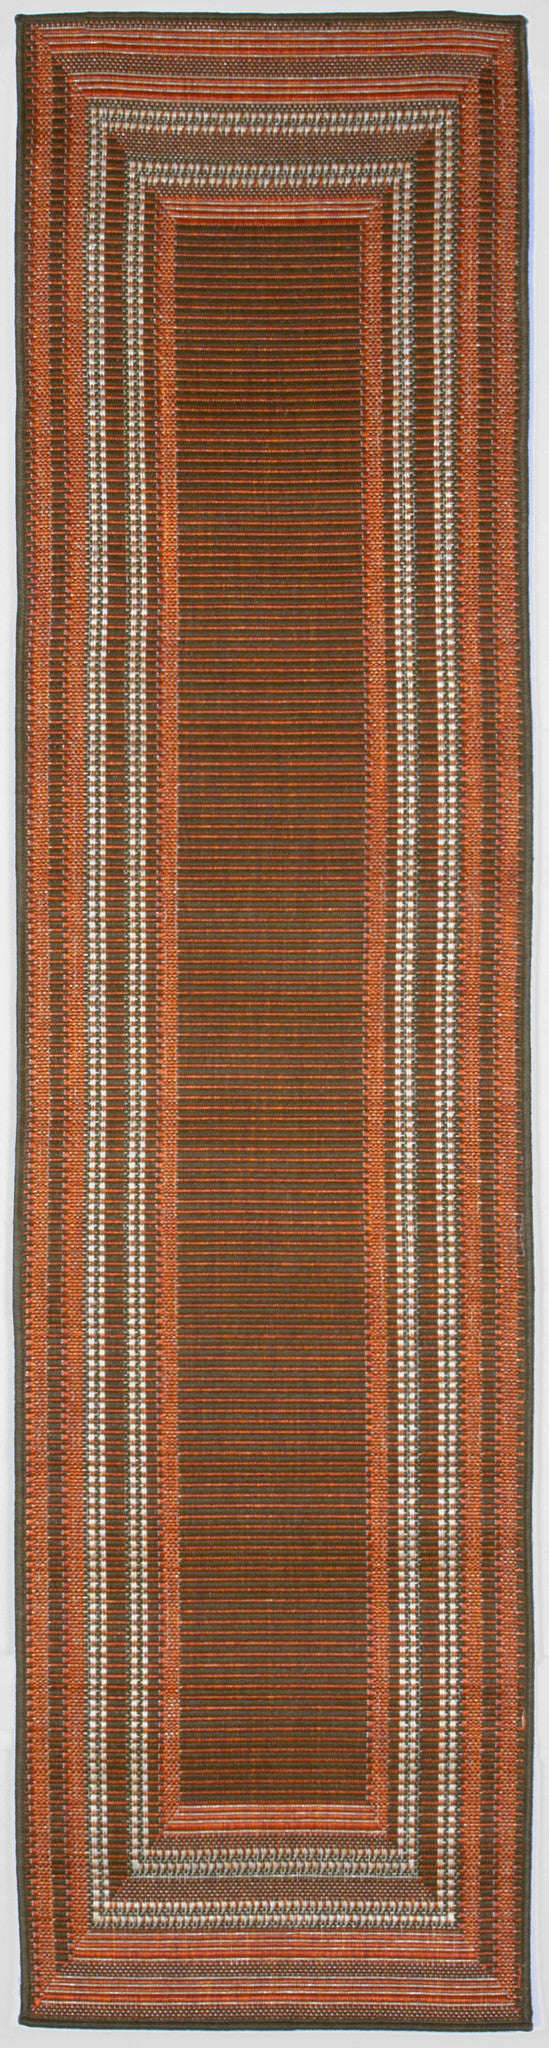 "Etched Border Terracot 23"" x 7'6"" Indoor/Outdoor Flatweave Rug"